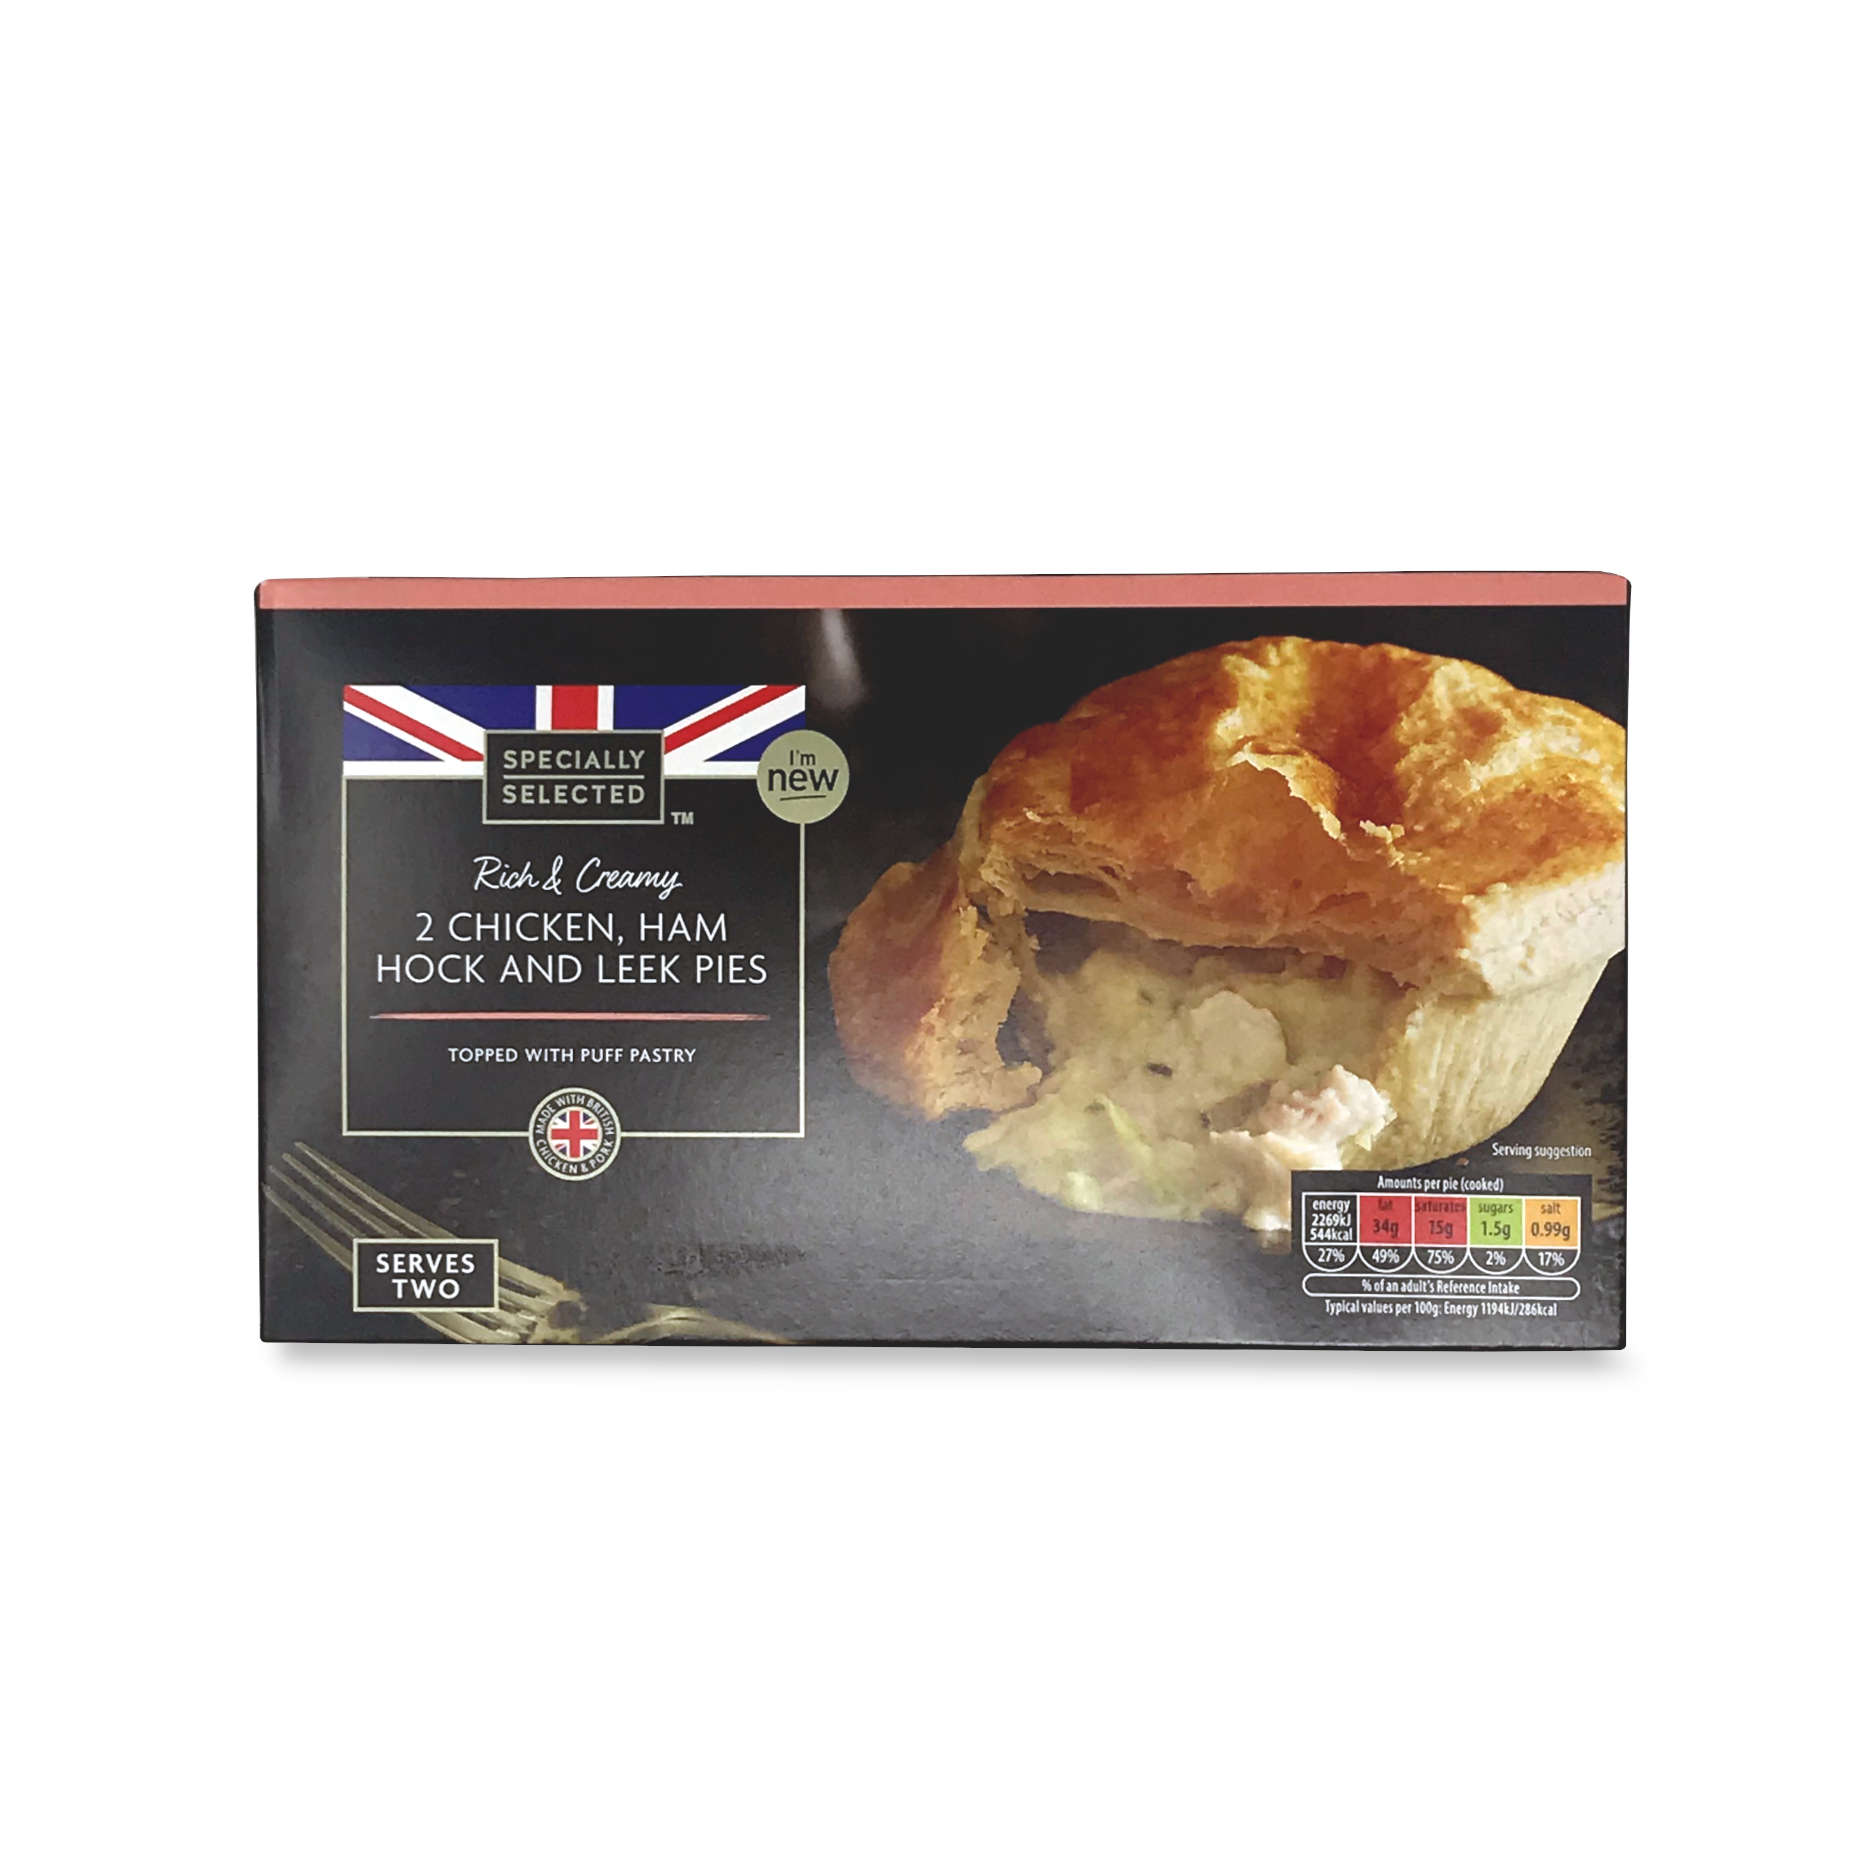 Rich Creamy 2 Chicken Ham Hock And Leek Pies 2count Specially Selected Aldi Ie